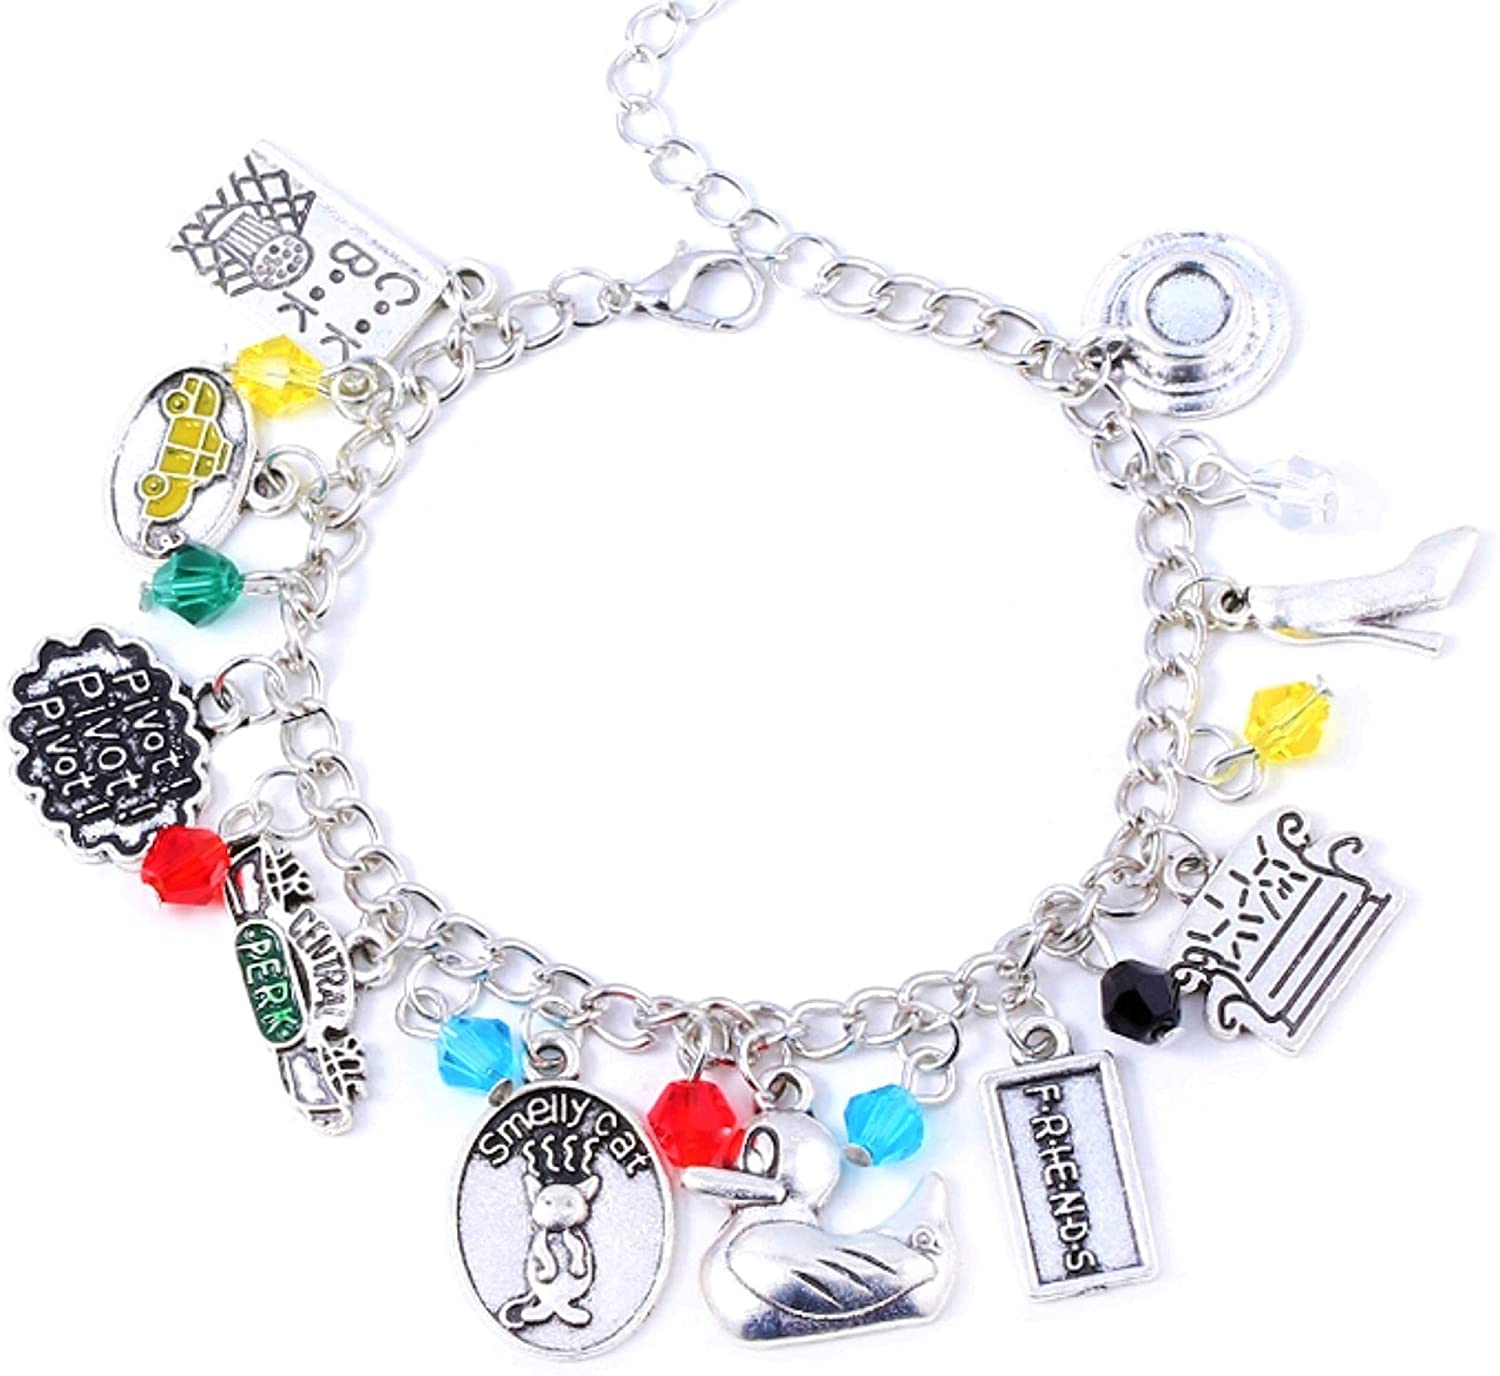 Friends Charm Bracelet (cute box) included - Merchandise Costume Jewelry Gifts for Women, gift for girlfriend, valentine with box